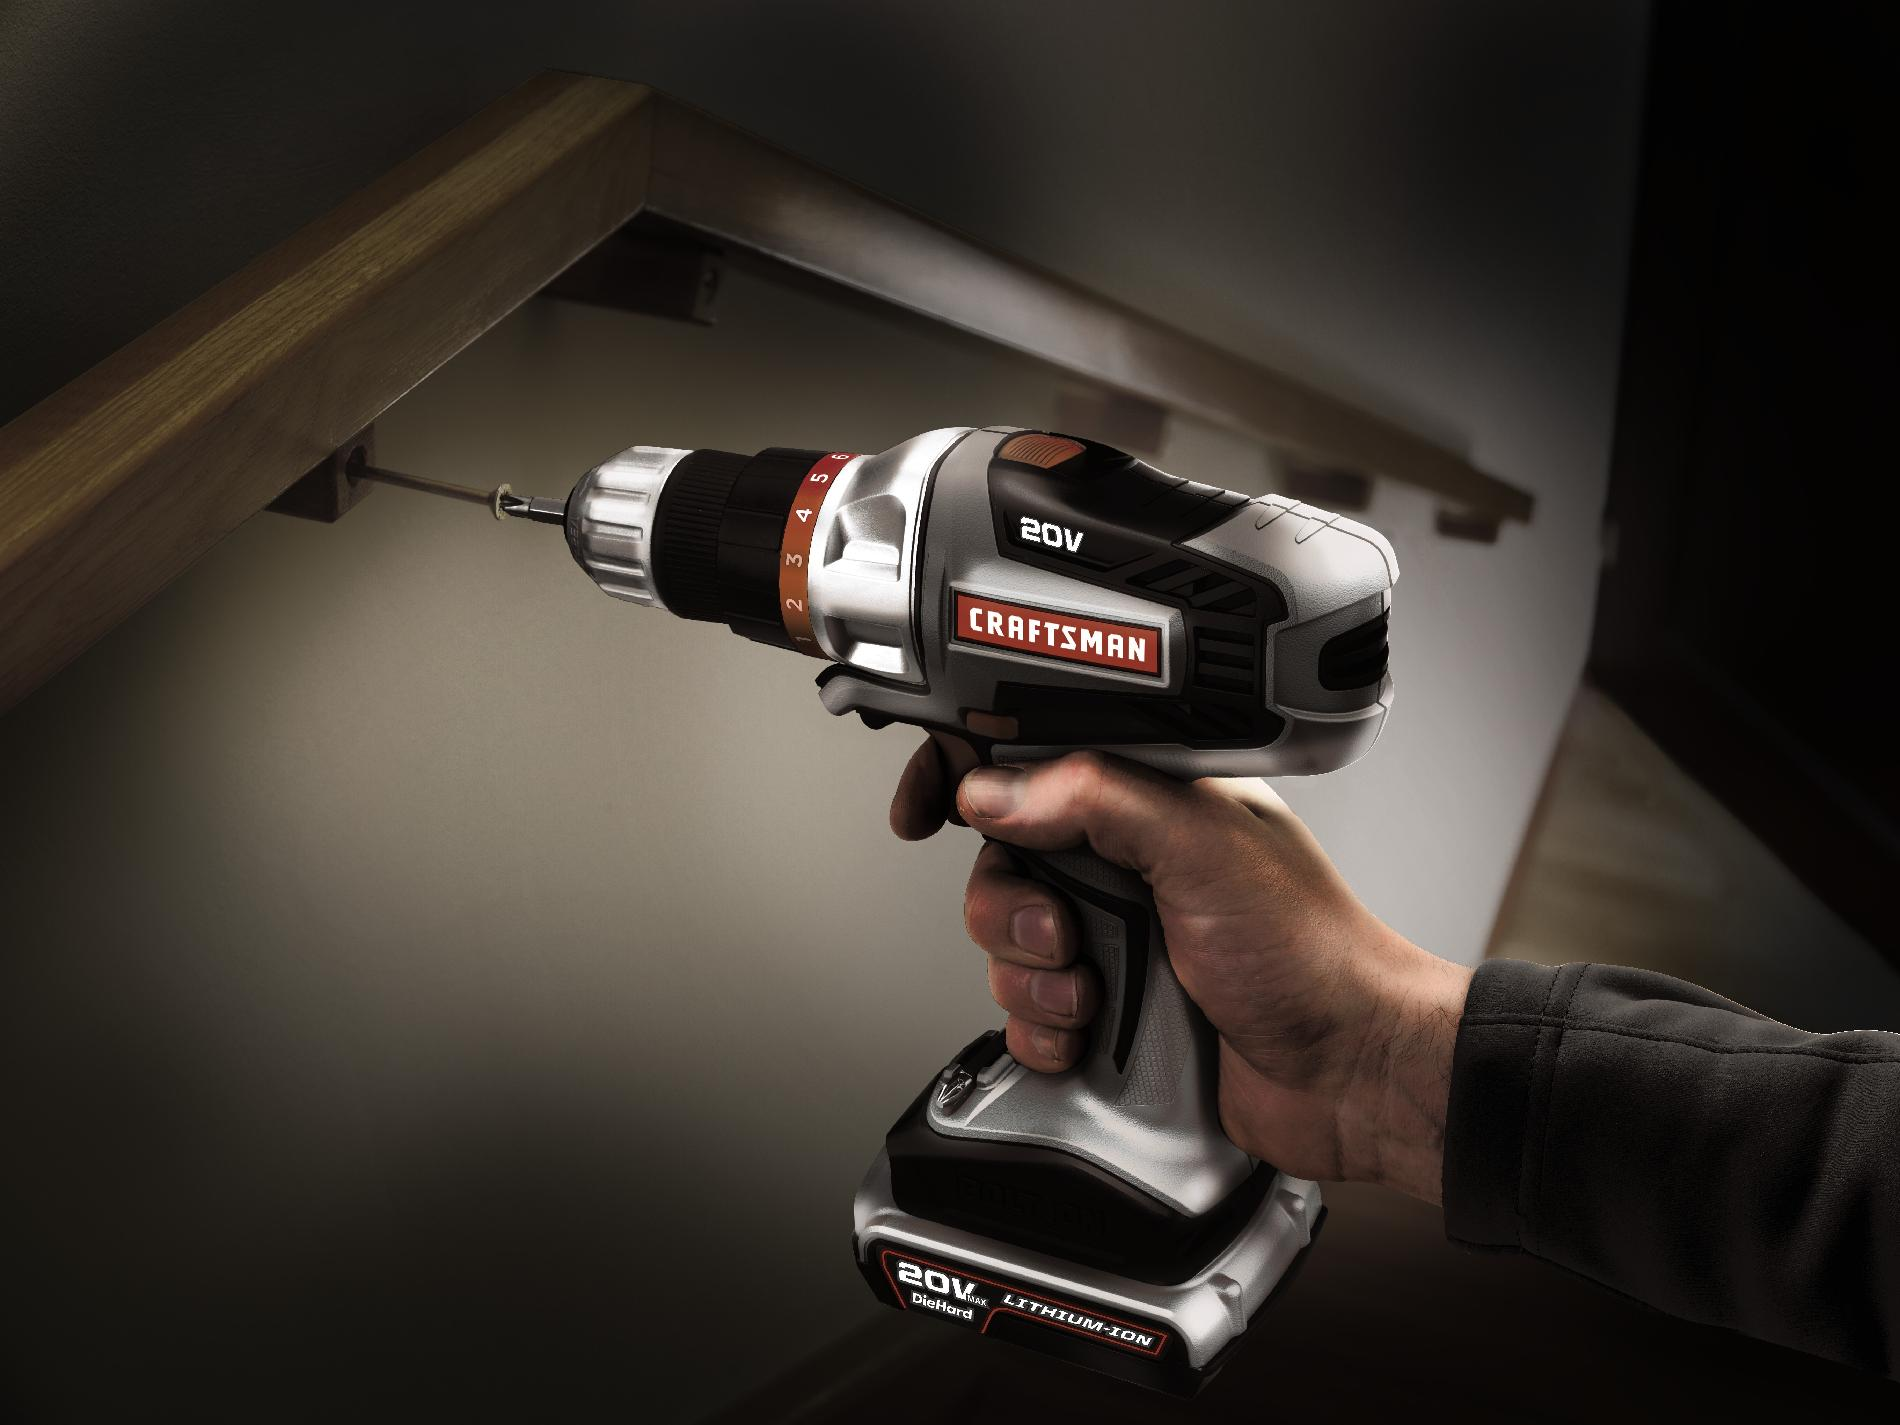 Craftsman Bolt-On™ 20V Max Lithium Ion Drill/Driver